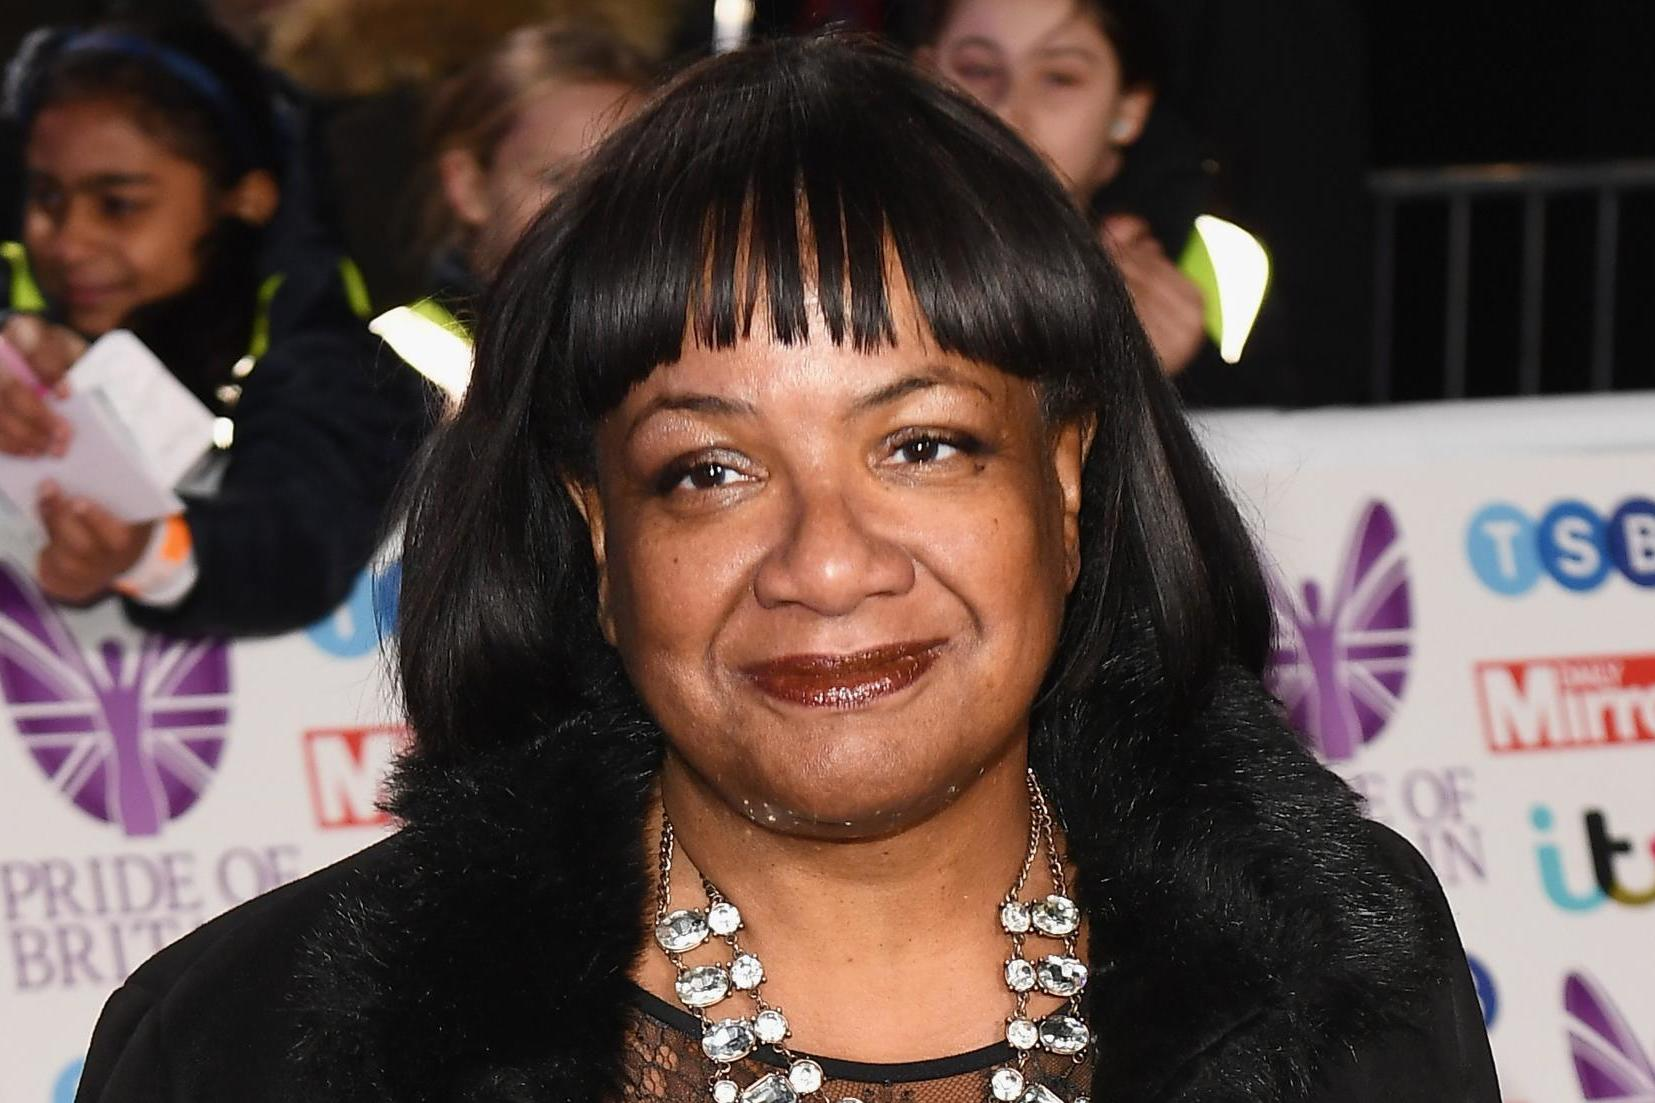 M&S stores sell out of mojito cans days after Diane Abbott photographed drinking one on tube 1